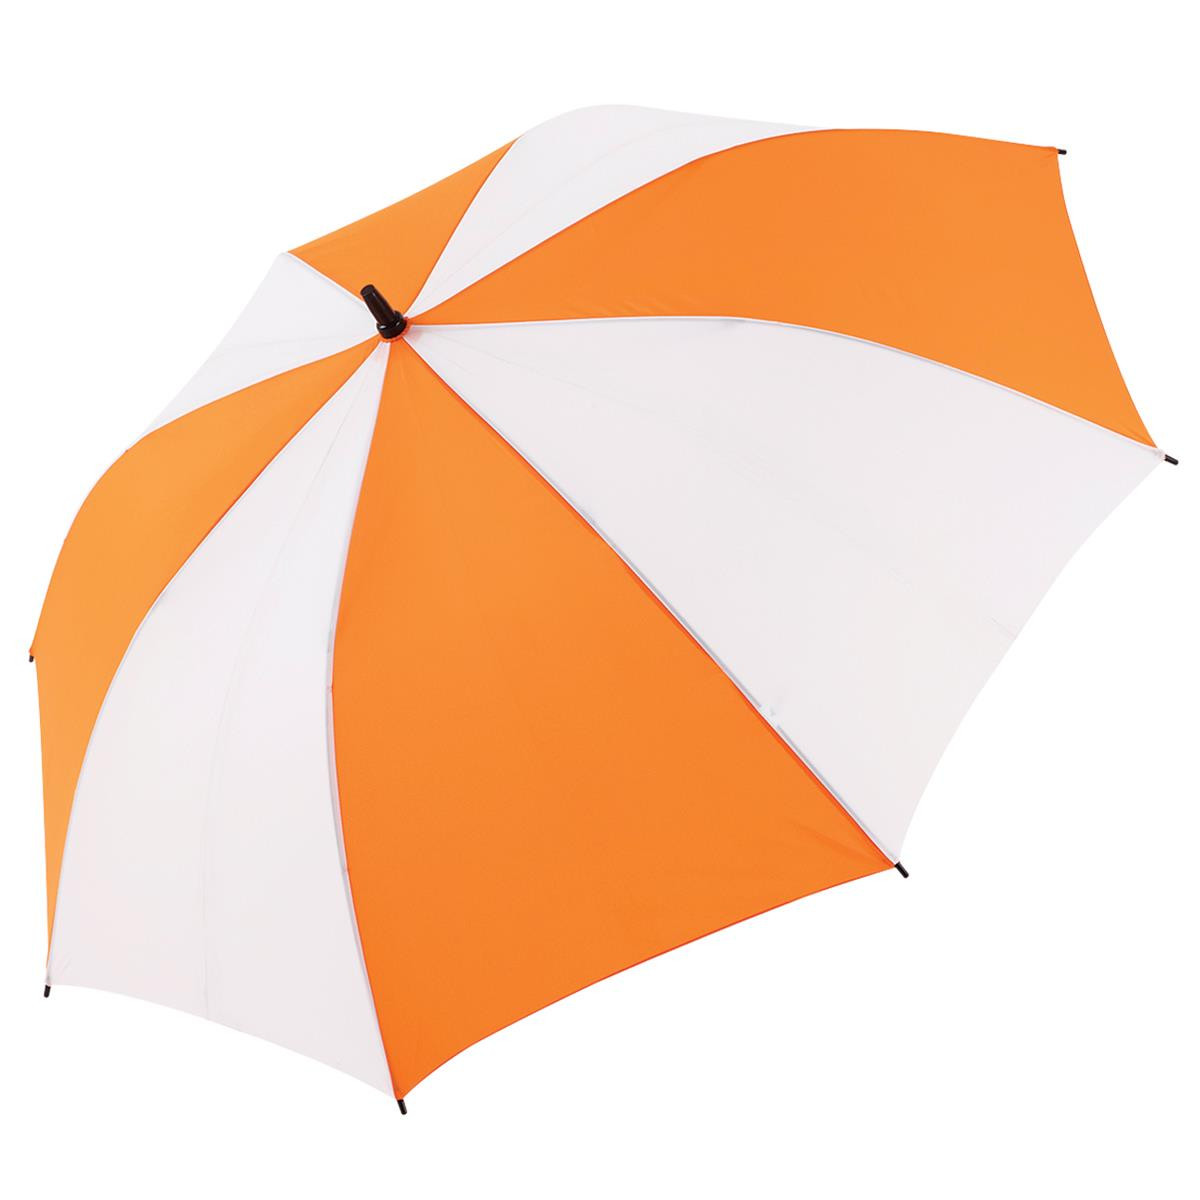 2100 Umbra - Gusto Umbrella / Fibreglass Shaft / Auto Open